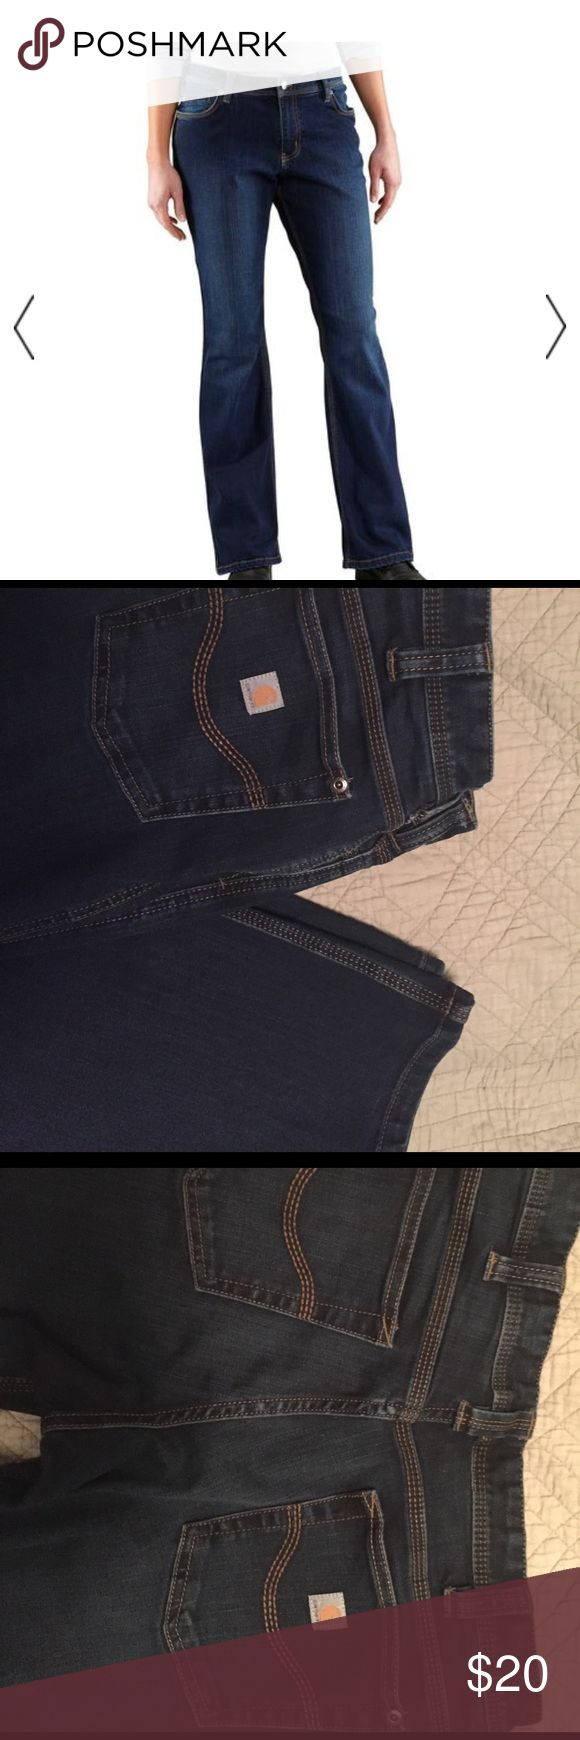 Two pairs Carhartt work jeans size 6 Tall Two pair of virtually identical Carhartt denim work pants size 6 Tall. Jeans wore once each. No damage or wear. Perfect for the female tradesworker. About as stylish as women's work denim gets. Posting is for both pair. Carhartt Jeans Straight Leg